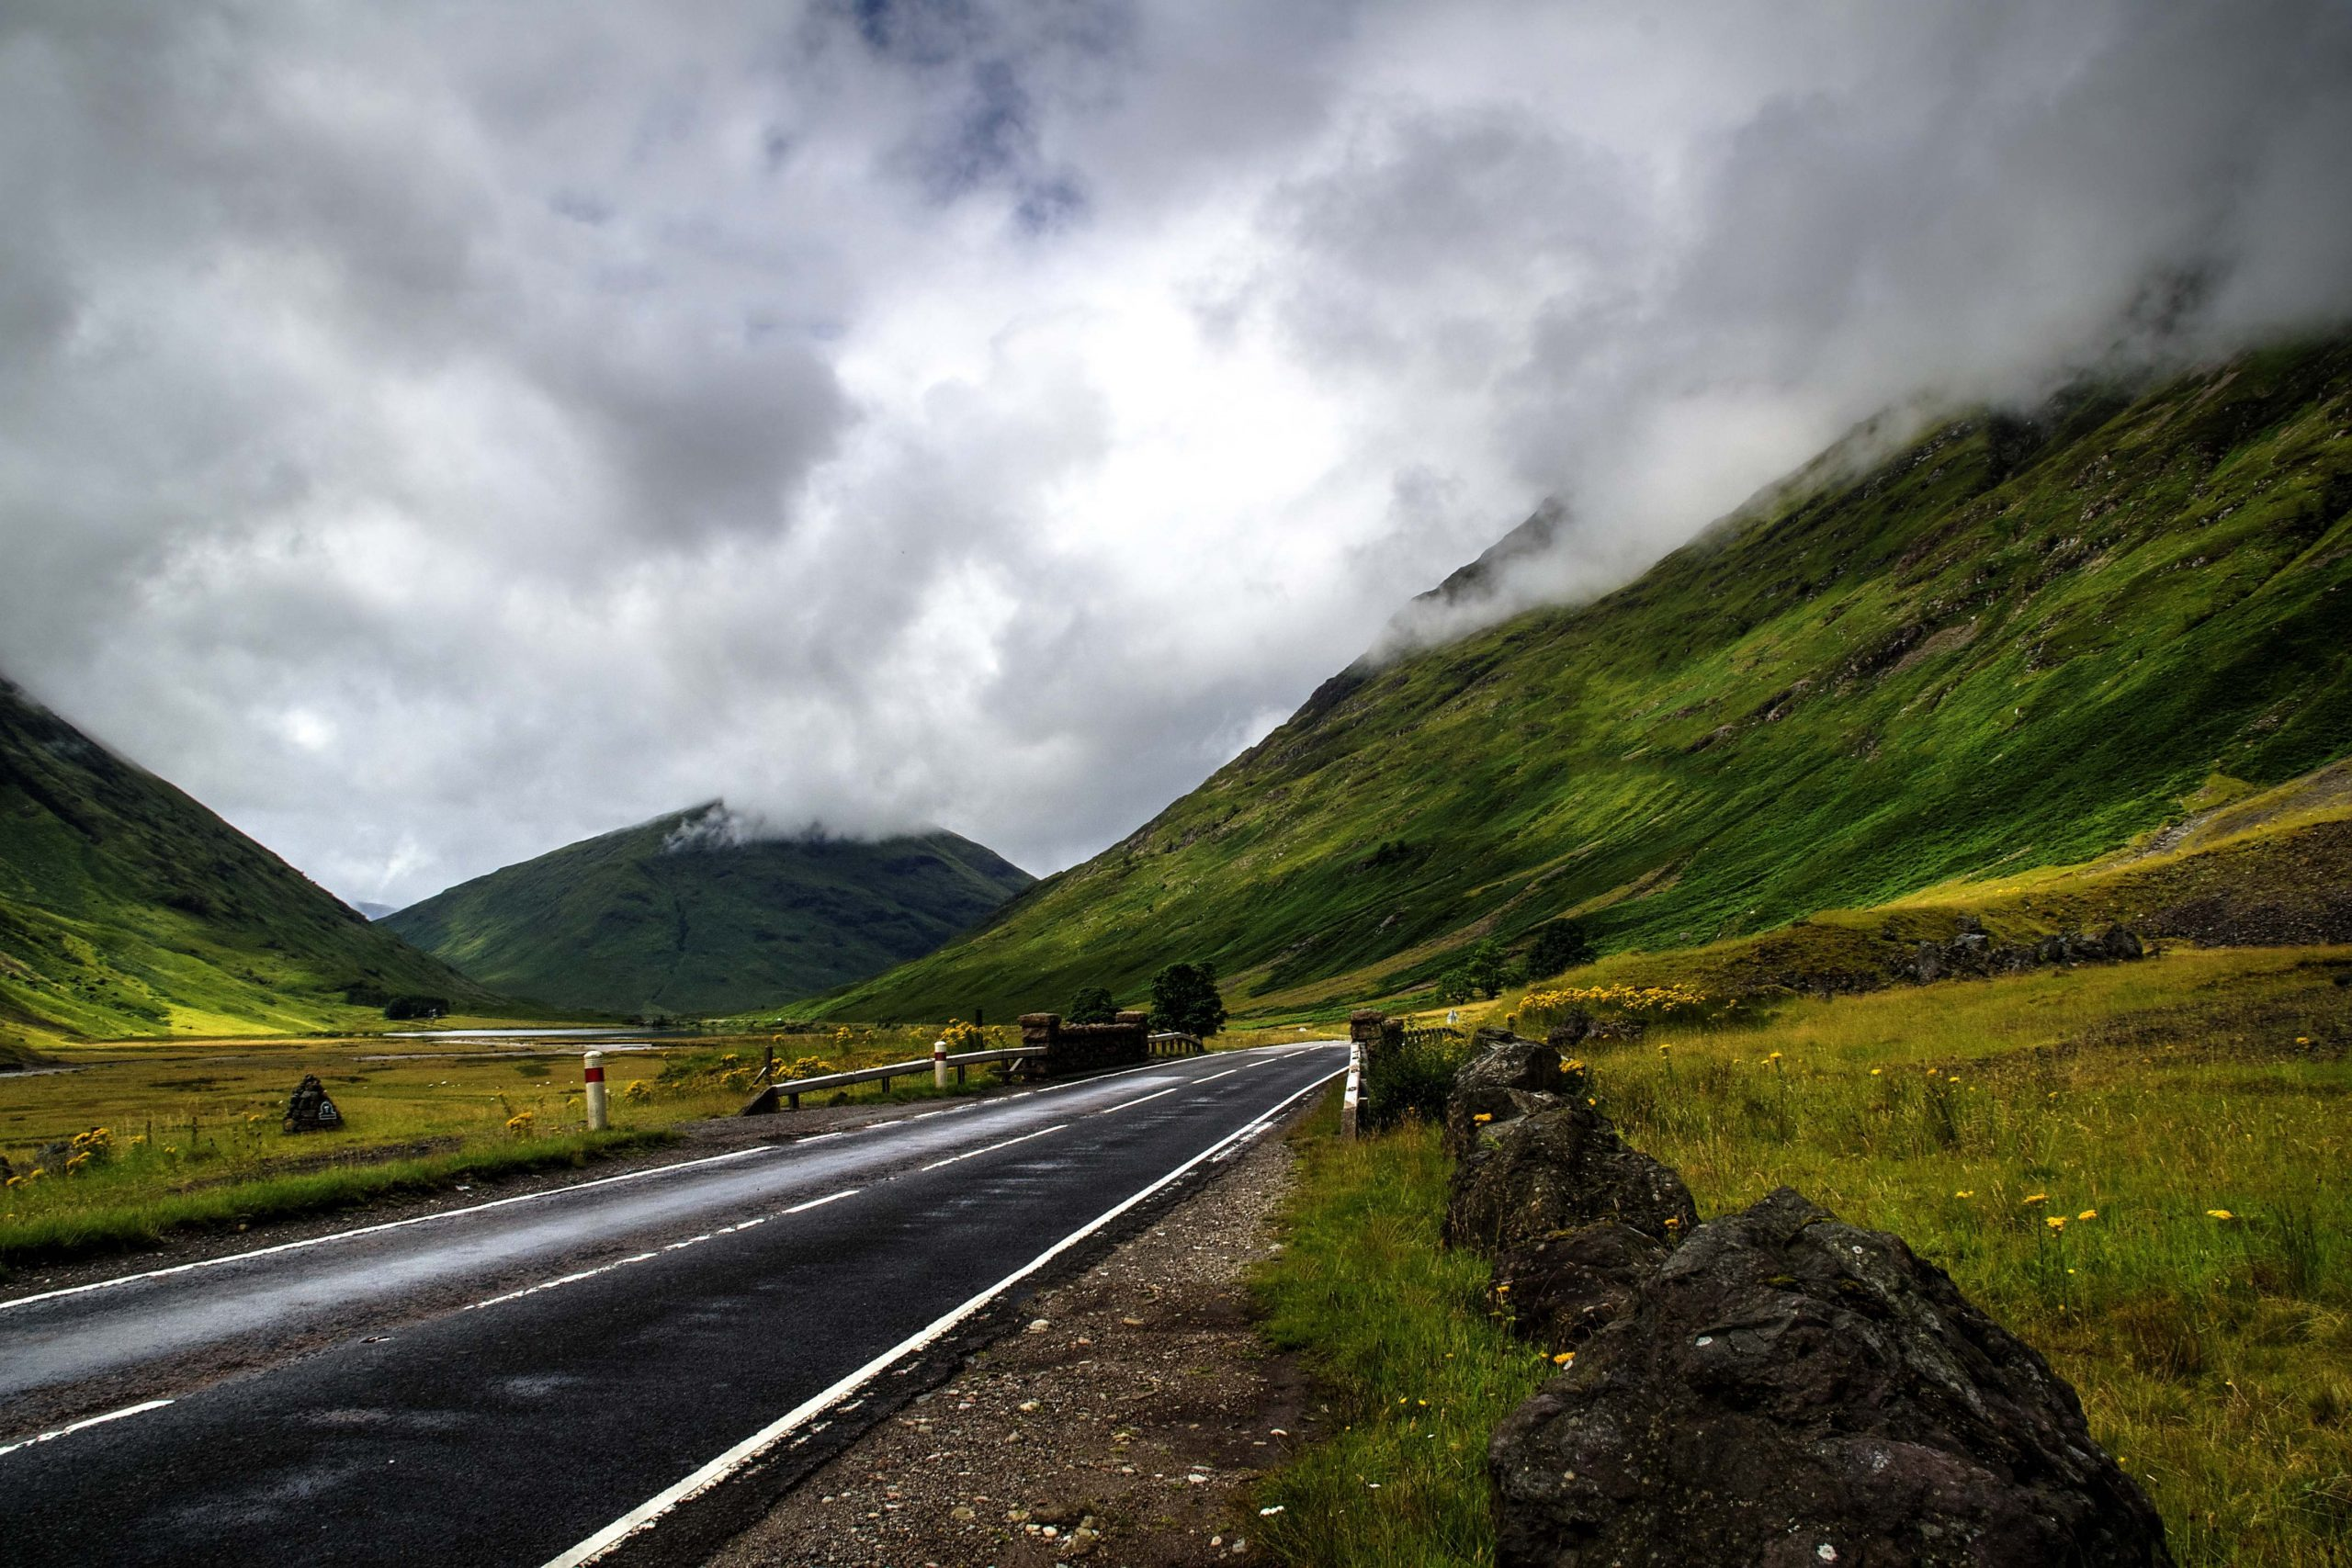 A beautiful shot of the road surrounded by mountains under the cloudy sky